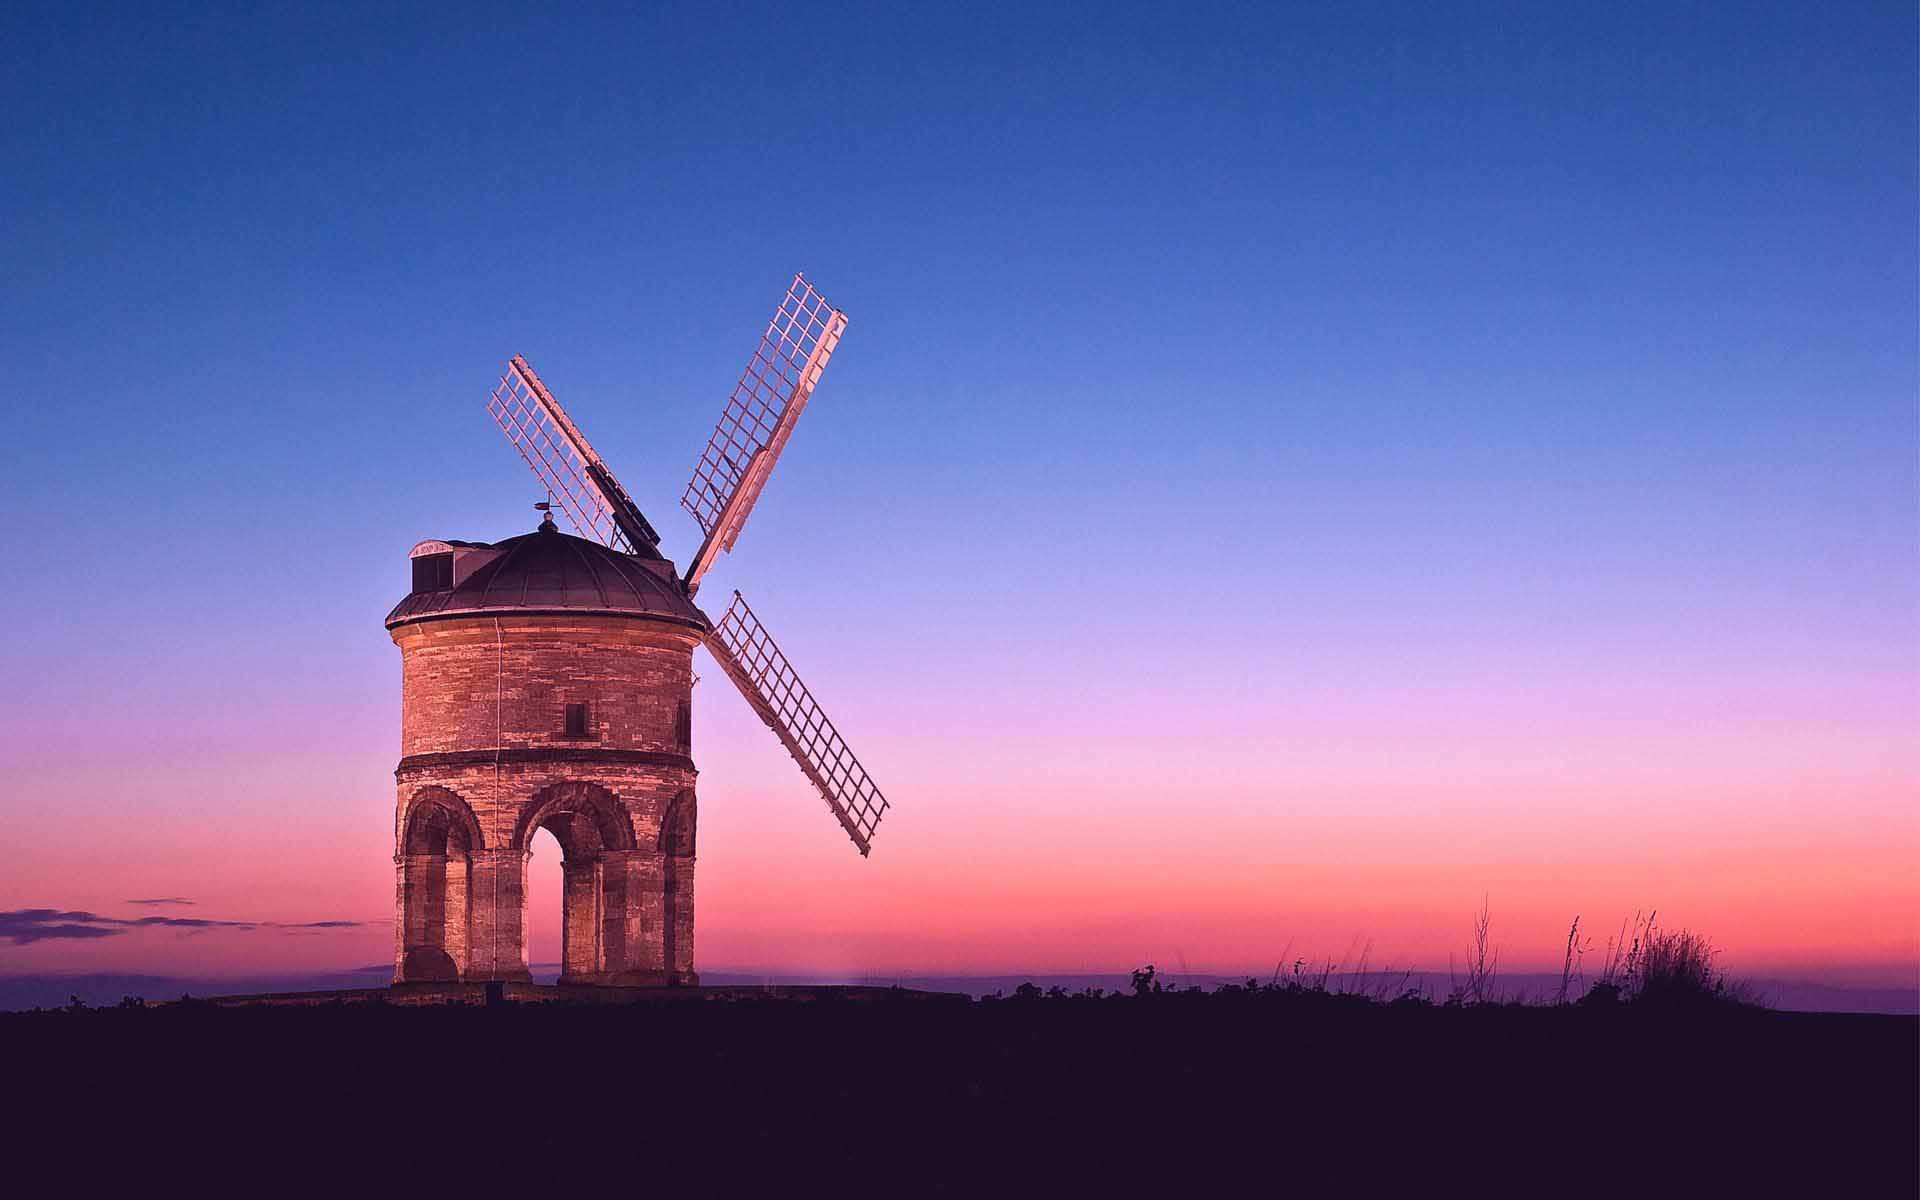 windmill wallpaper backgrounds   Windmill Photos HD Wallpapers   WINDMILLS  AND WIND TURBINES (2)   Pinterest   Windmill and Lighthouse